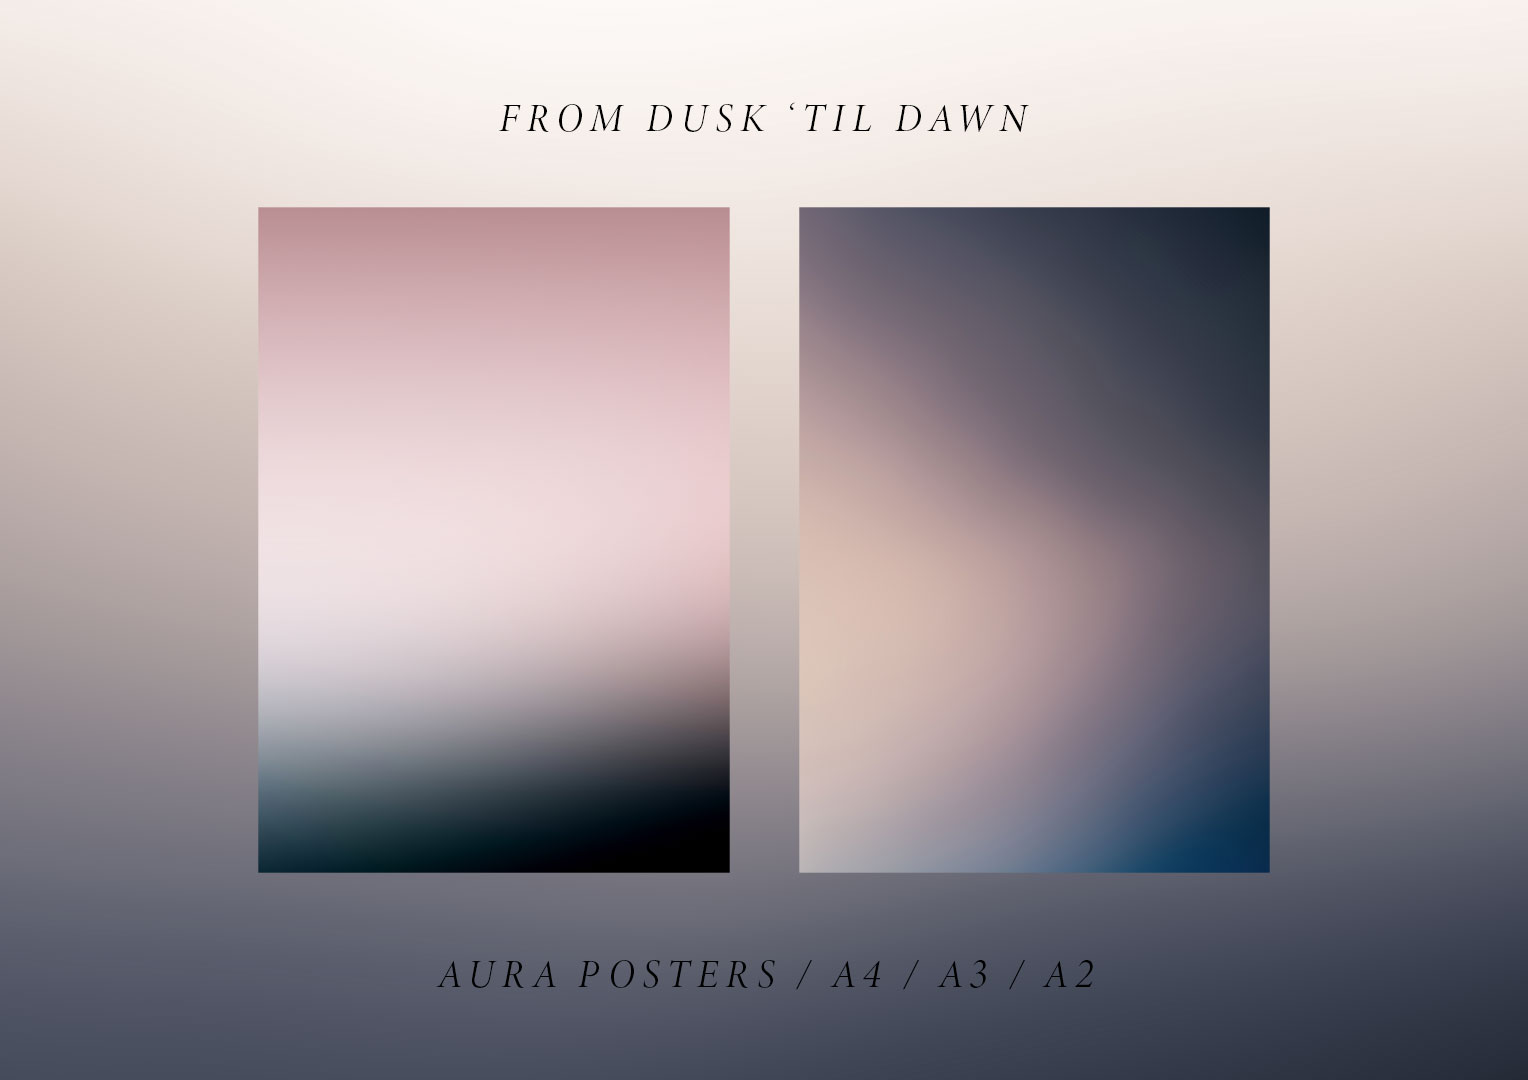 aura posters